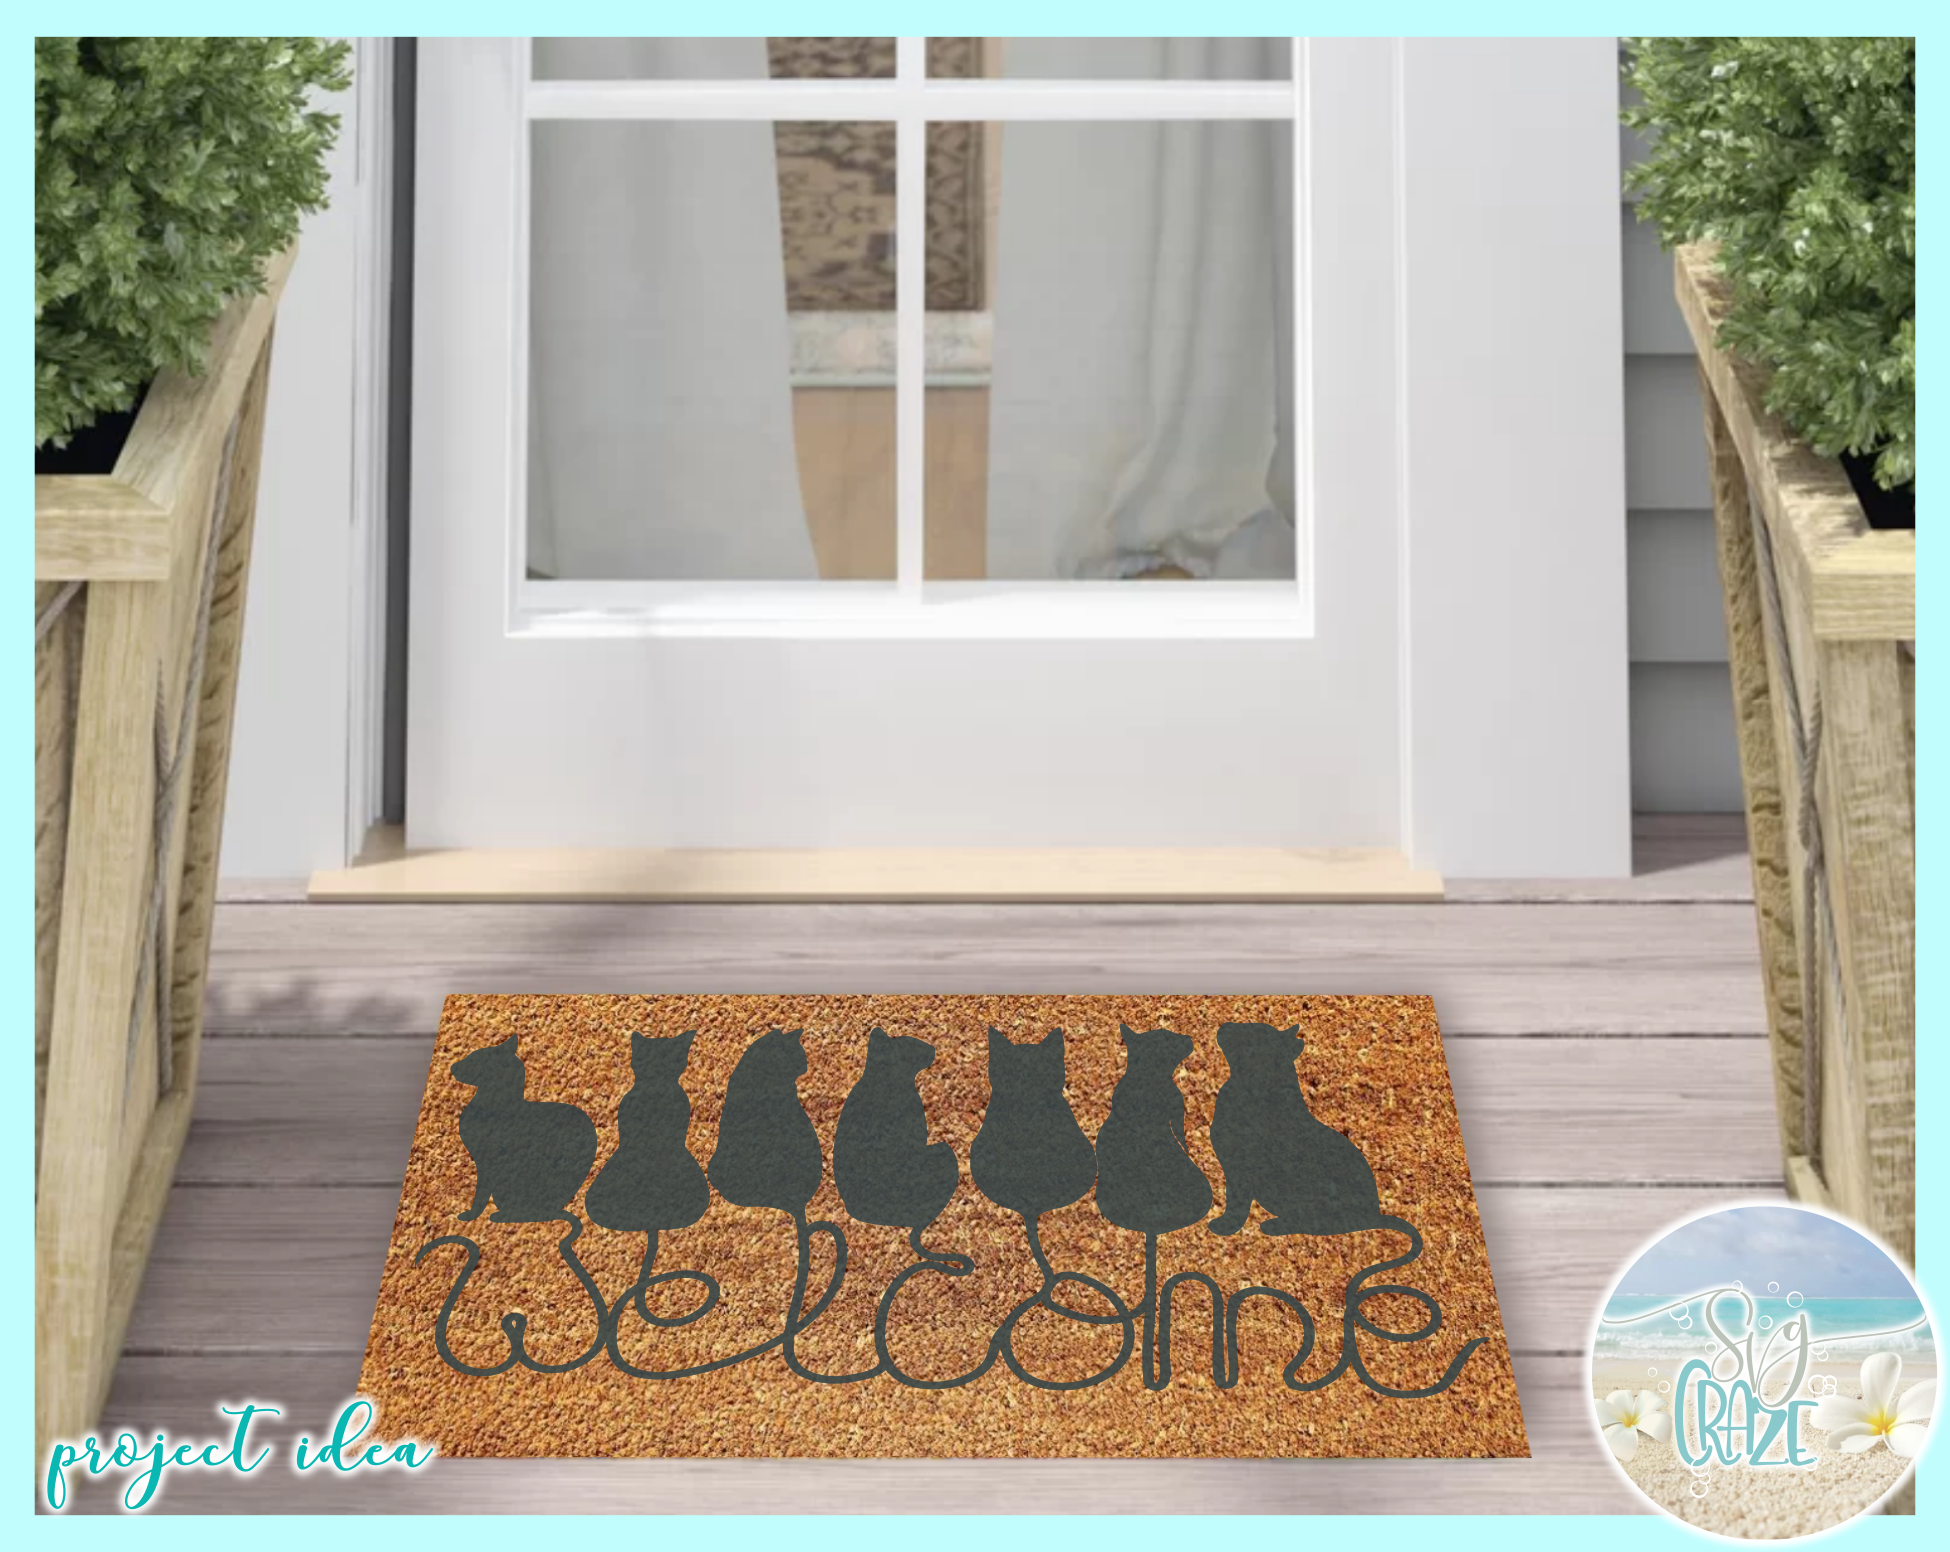 Cats Welcome Coir Door Mat Design Svg Dxf Eps Png Pdf Files example image 2